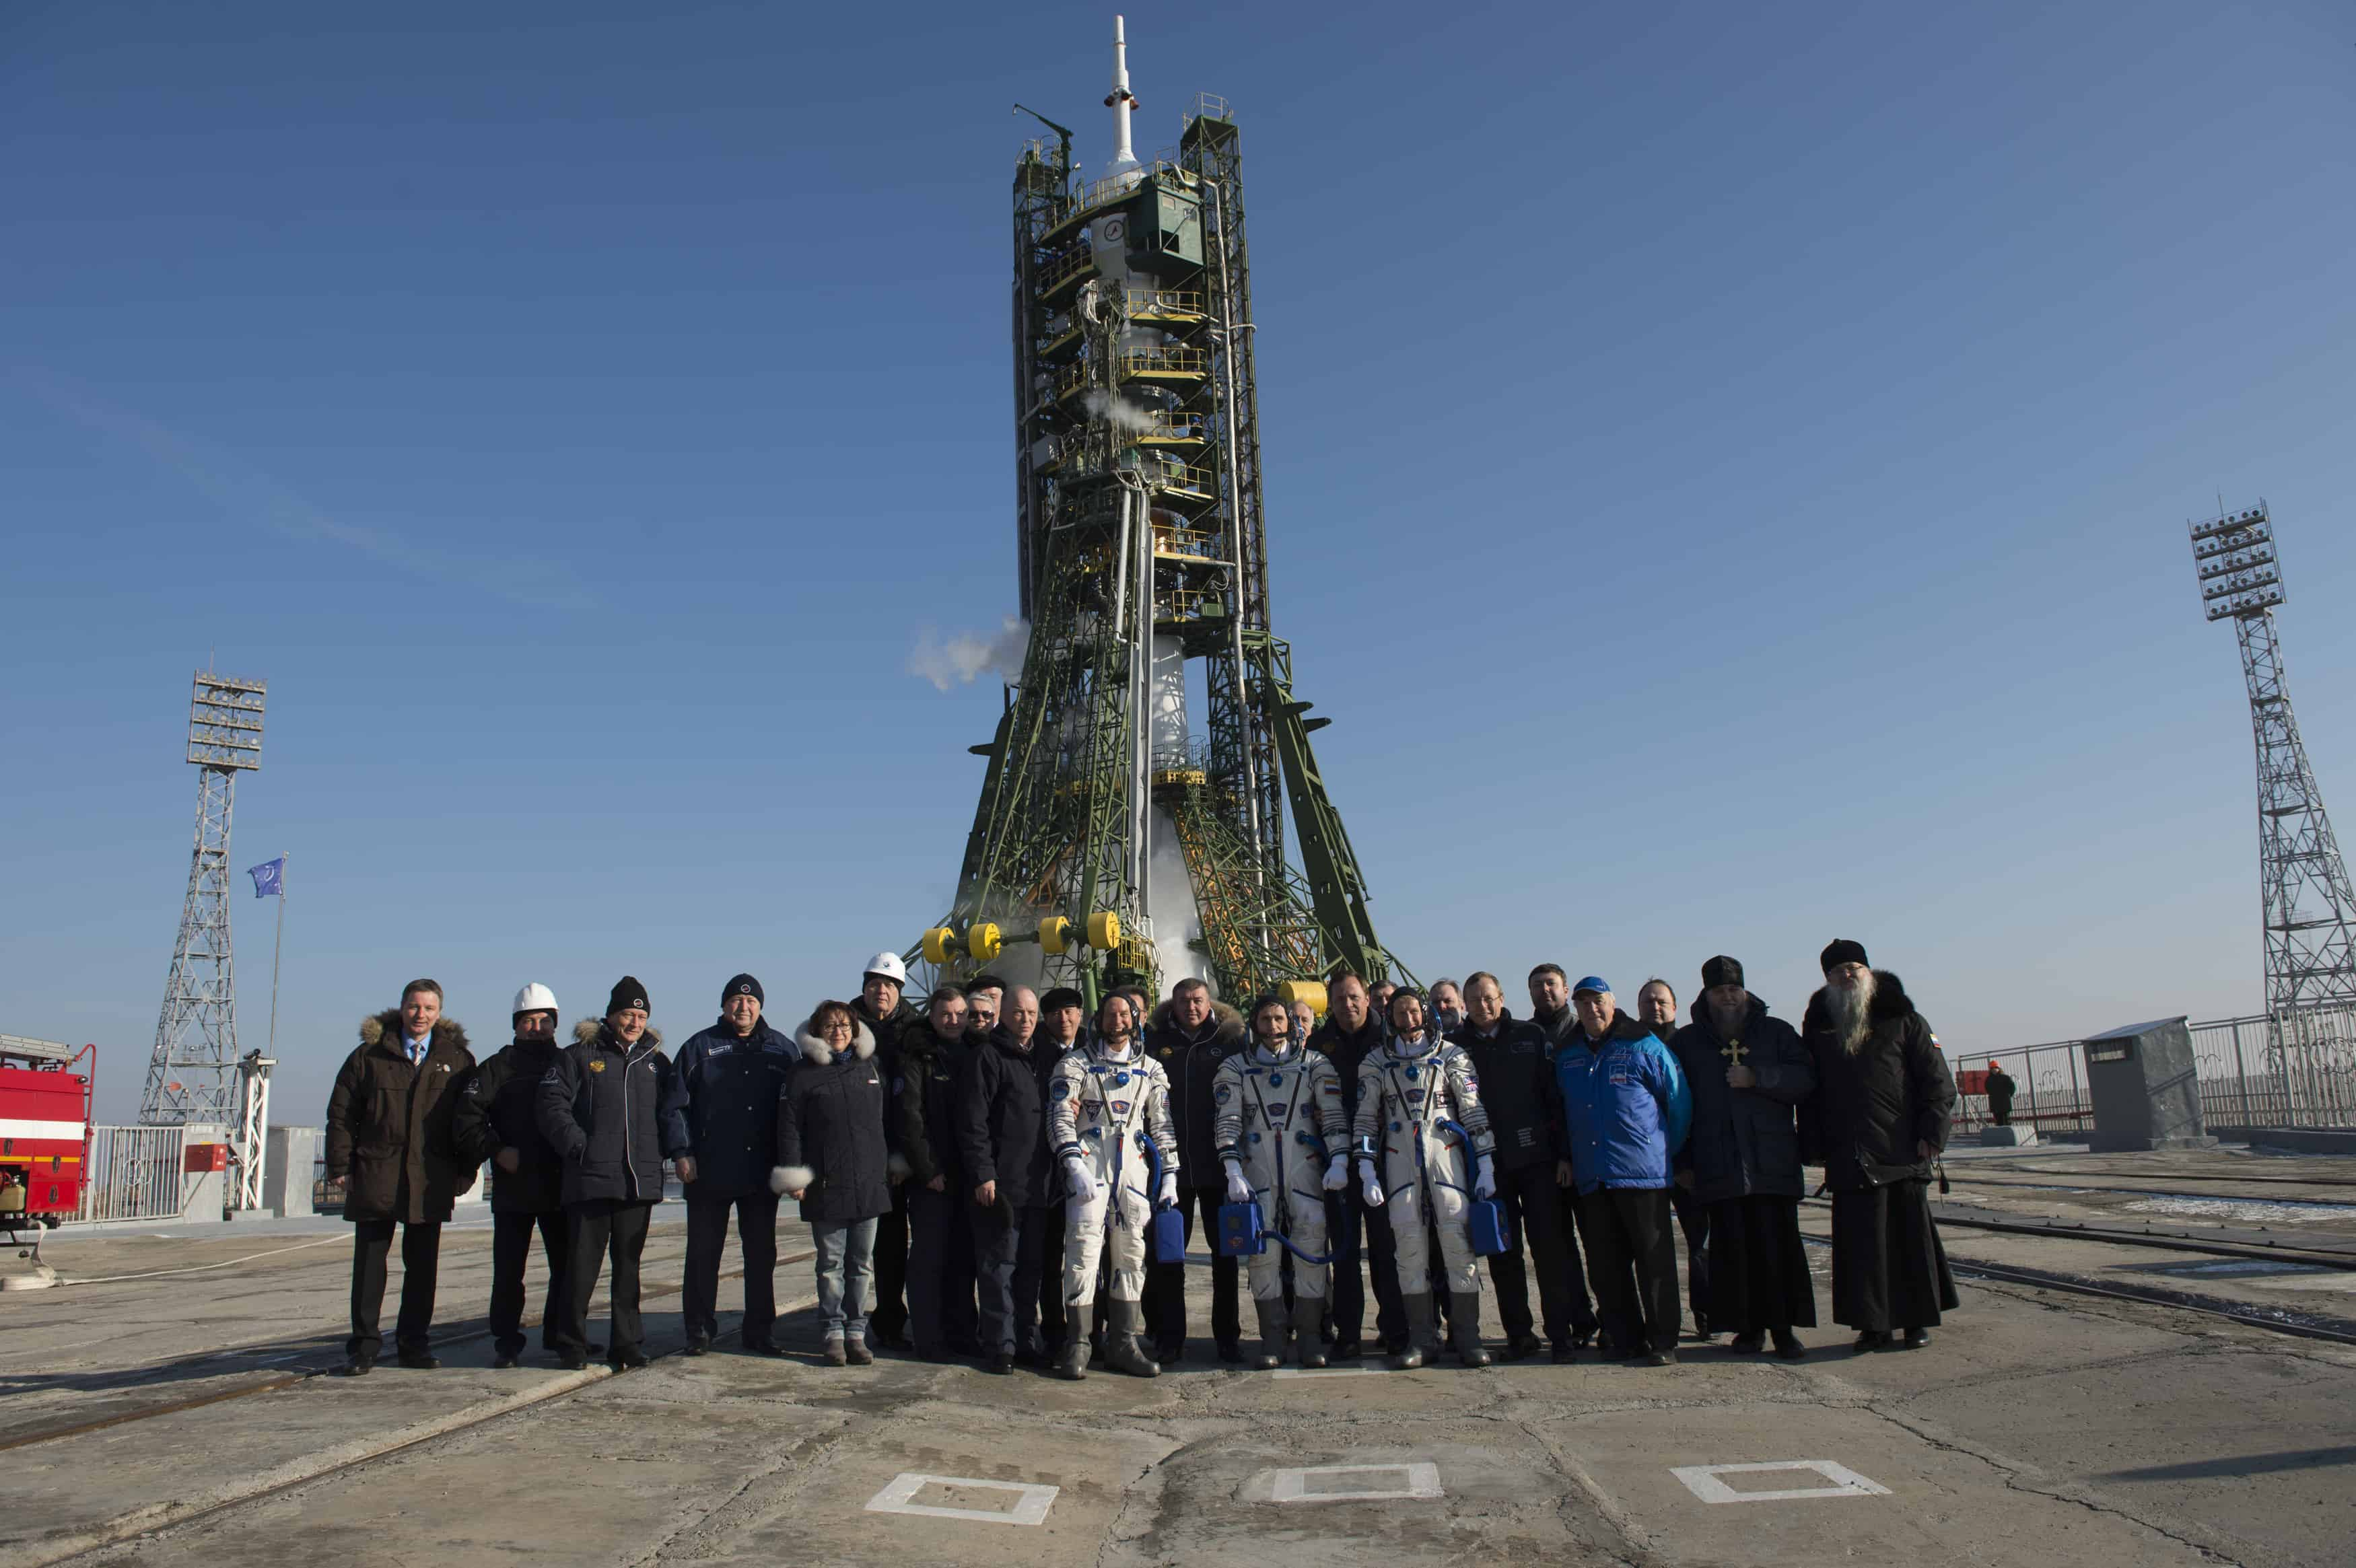 Tim Peake and the rest of the Soyuz TMA-19M astronauts and crew